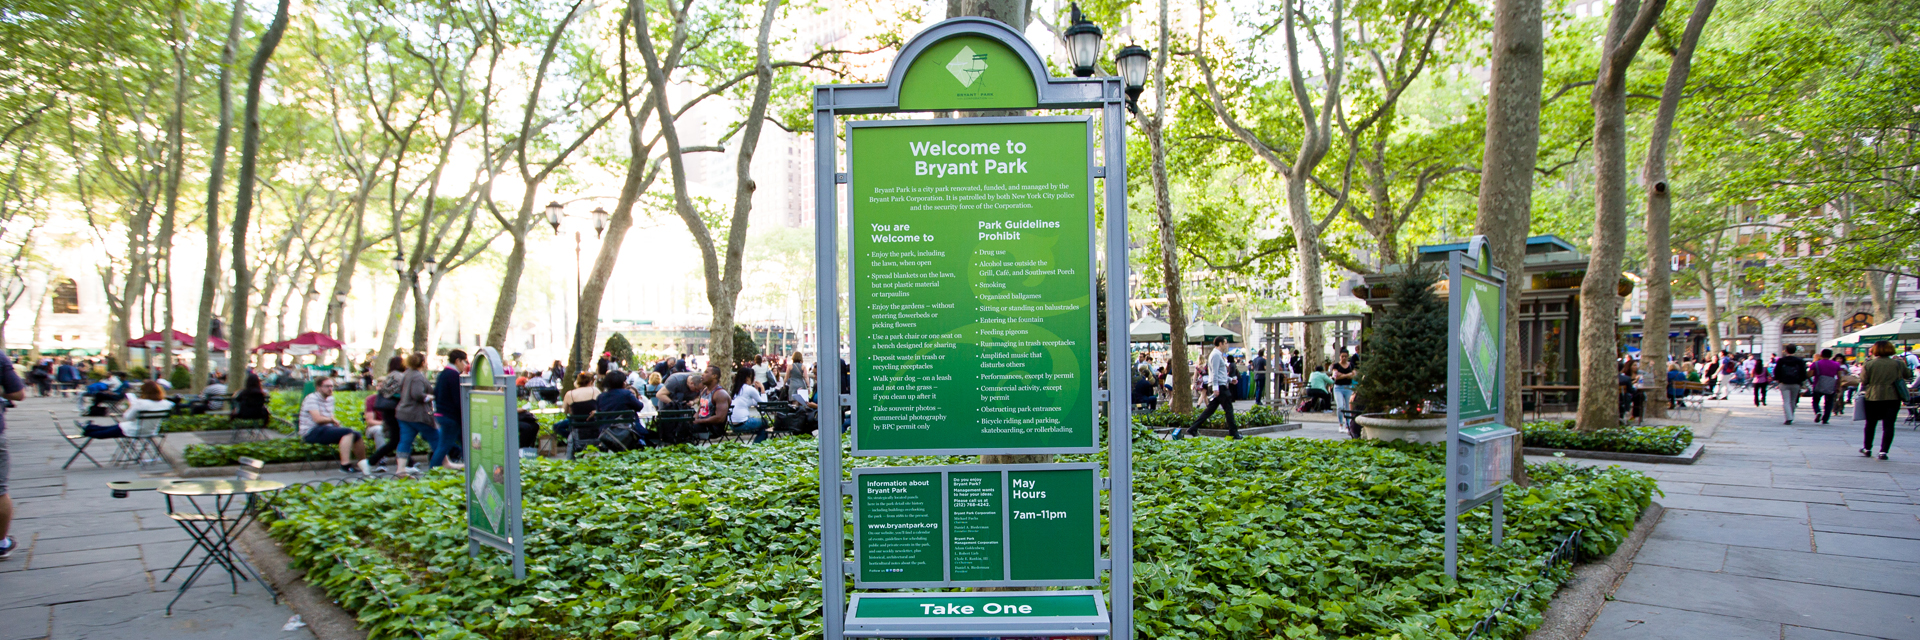 Bryant Park by Season | Archer Hotel New York